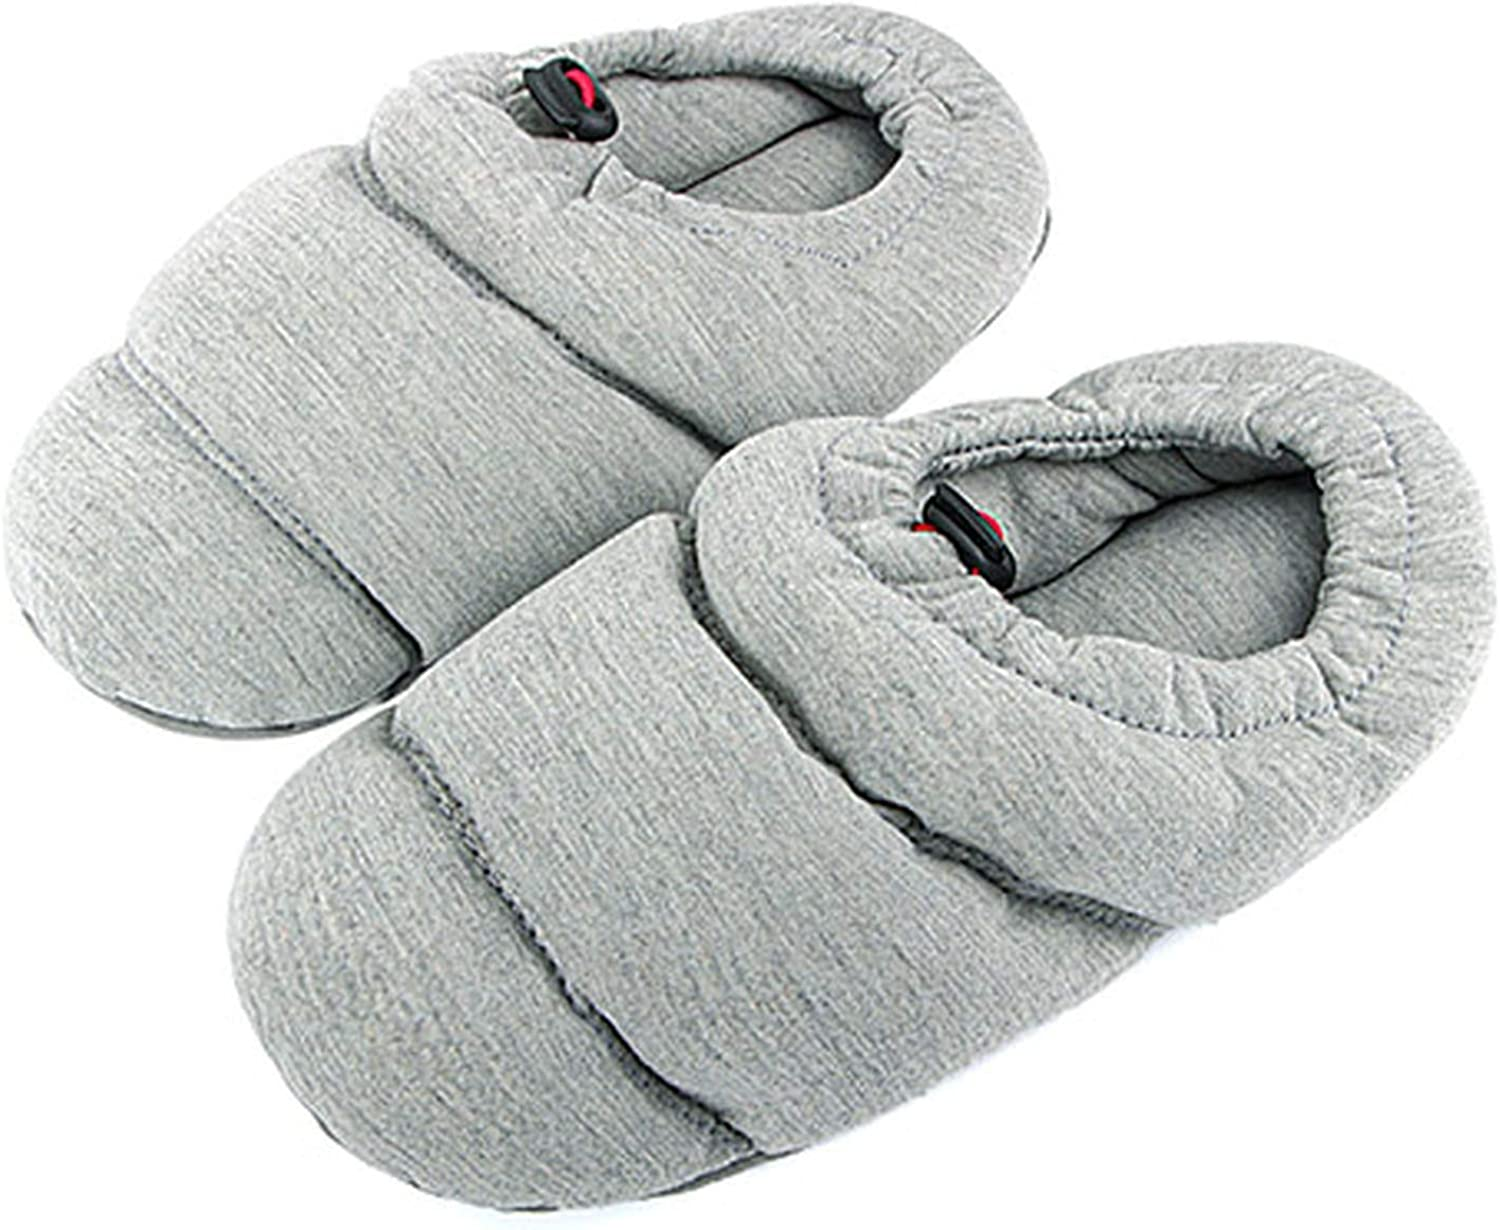 PilotageAuto Winter Home Slippers shoes Indoor Floor Cotton shoes Warm Slippers Women Slip-On Soft Slippers